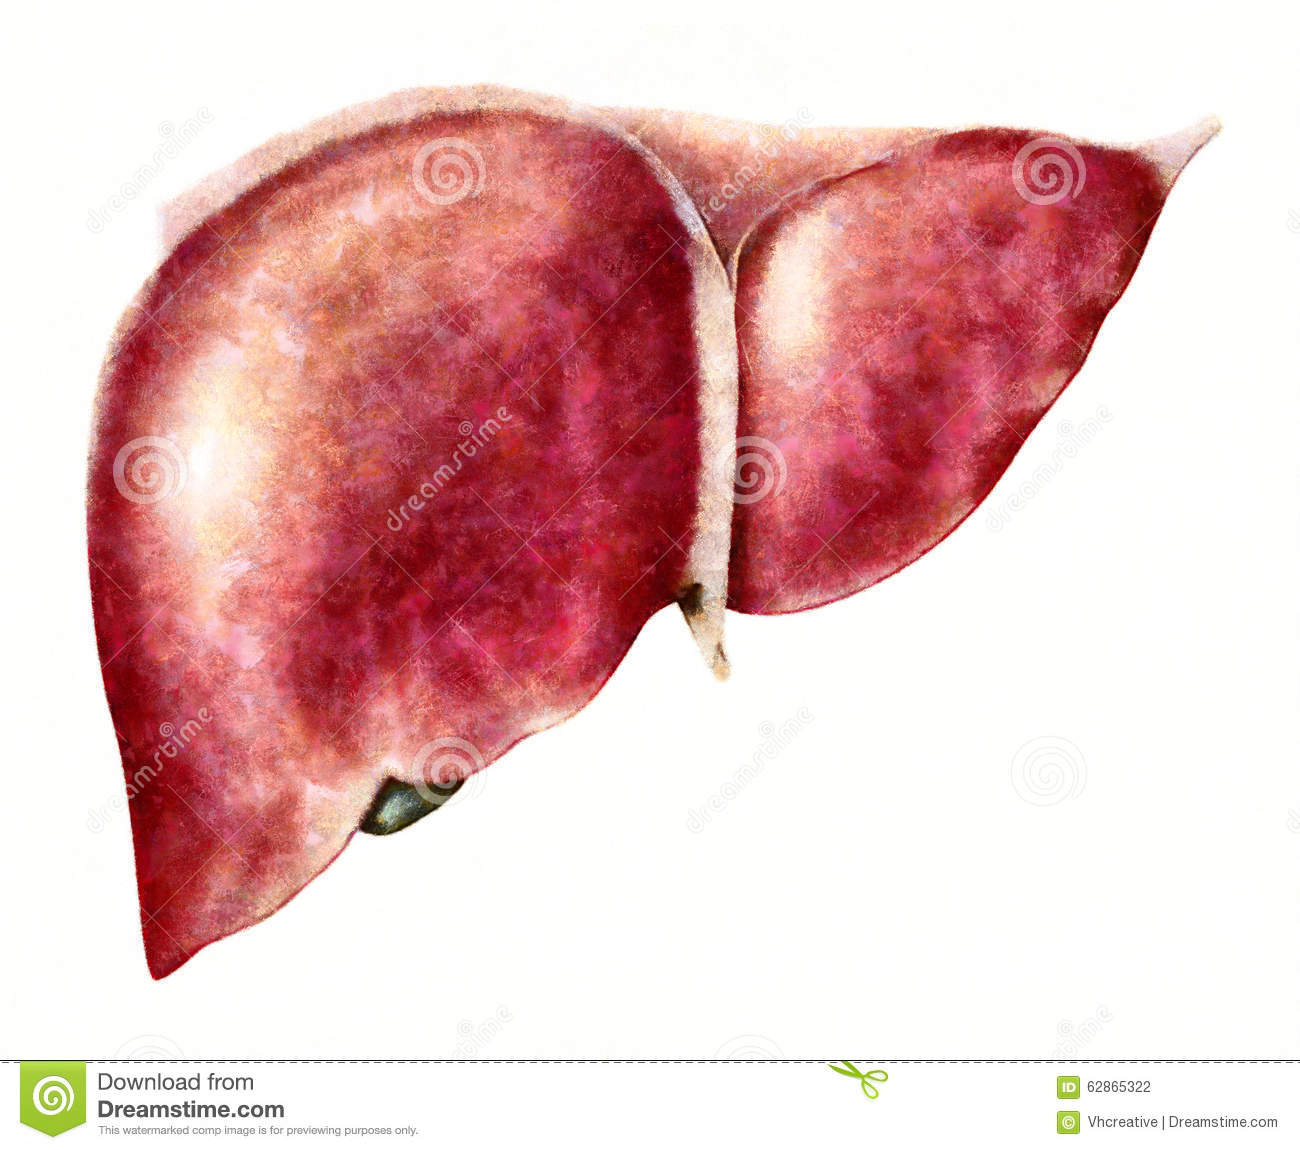 Human liver anatomy stock illustration. Illustration of medical ...